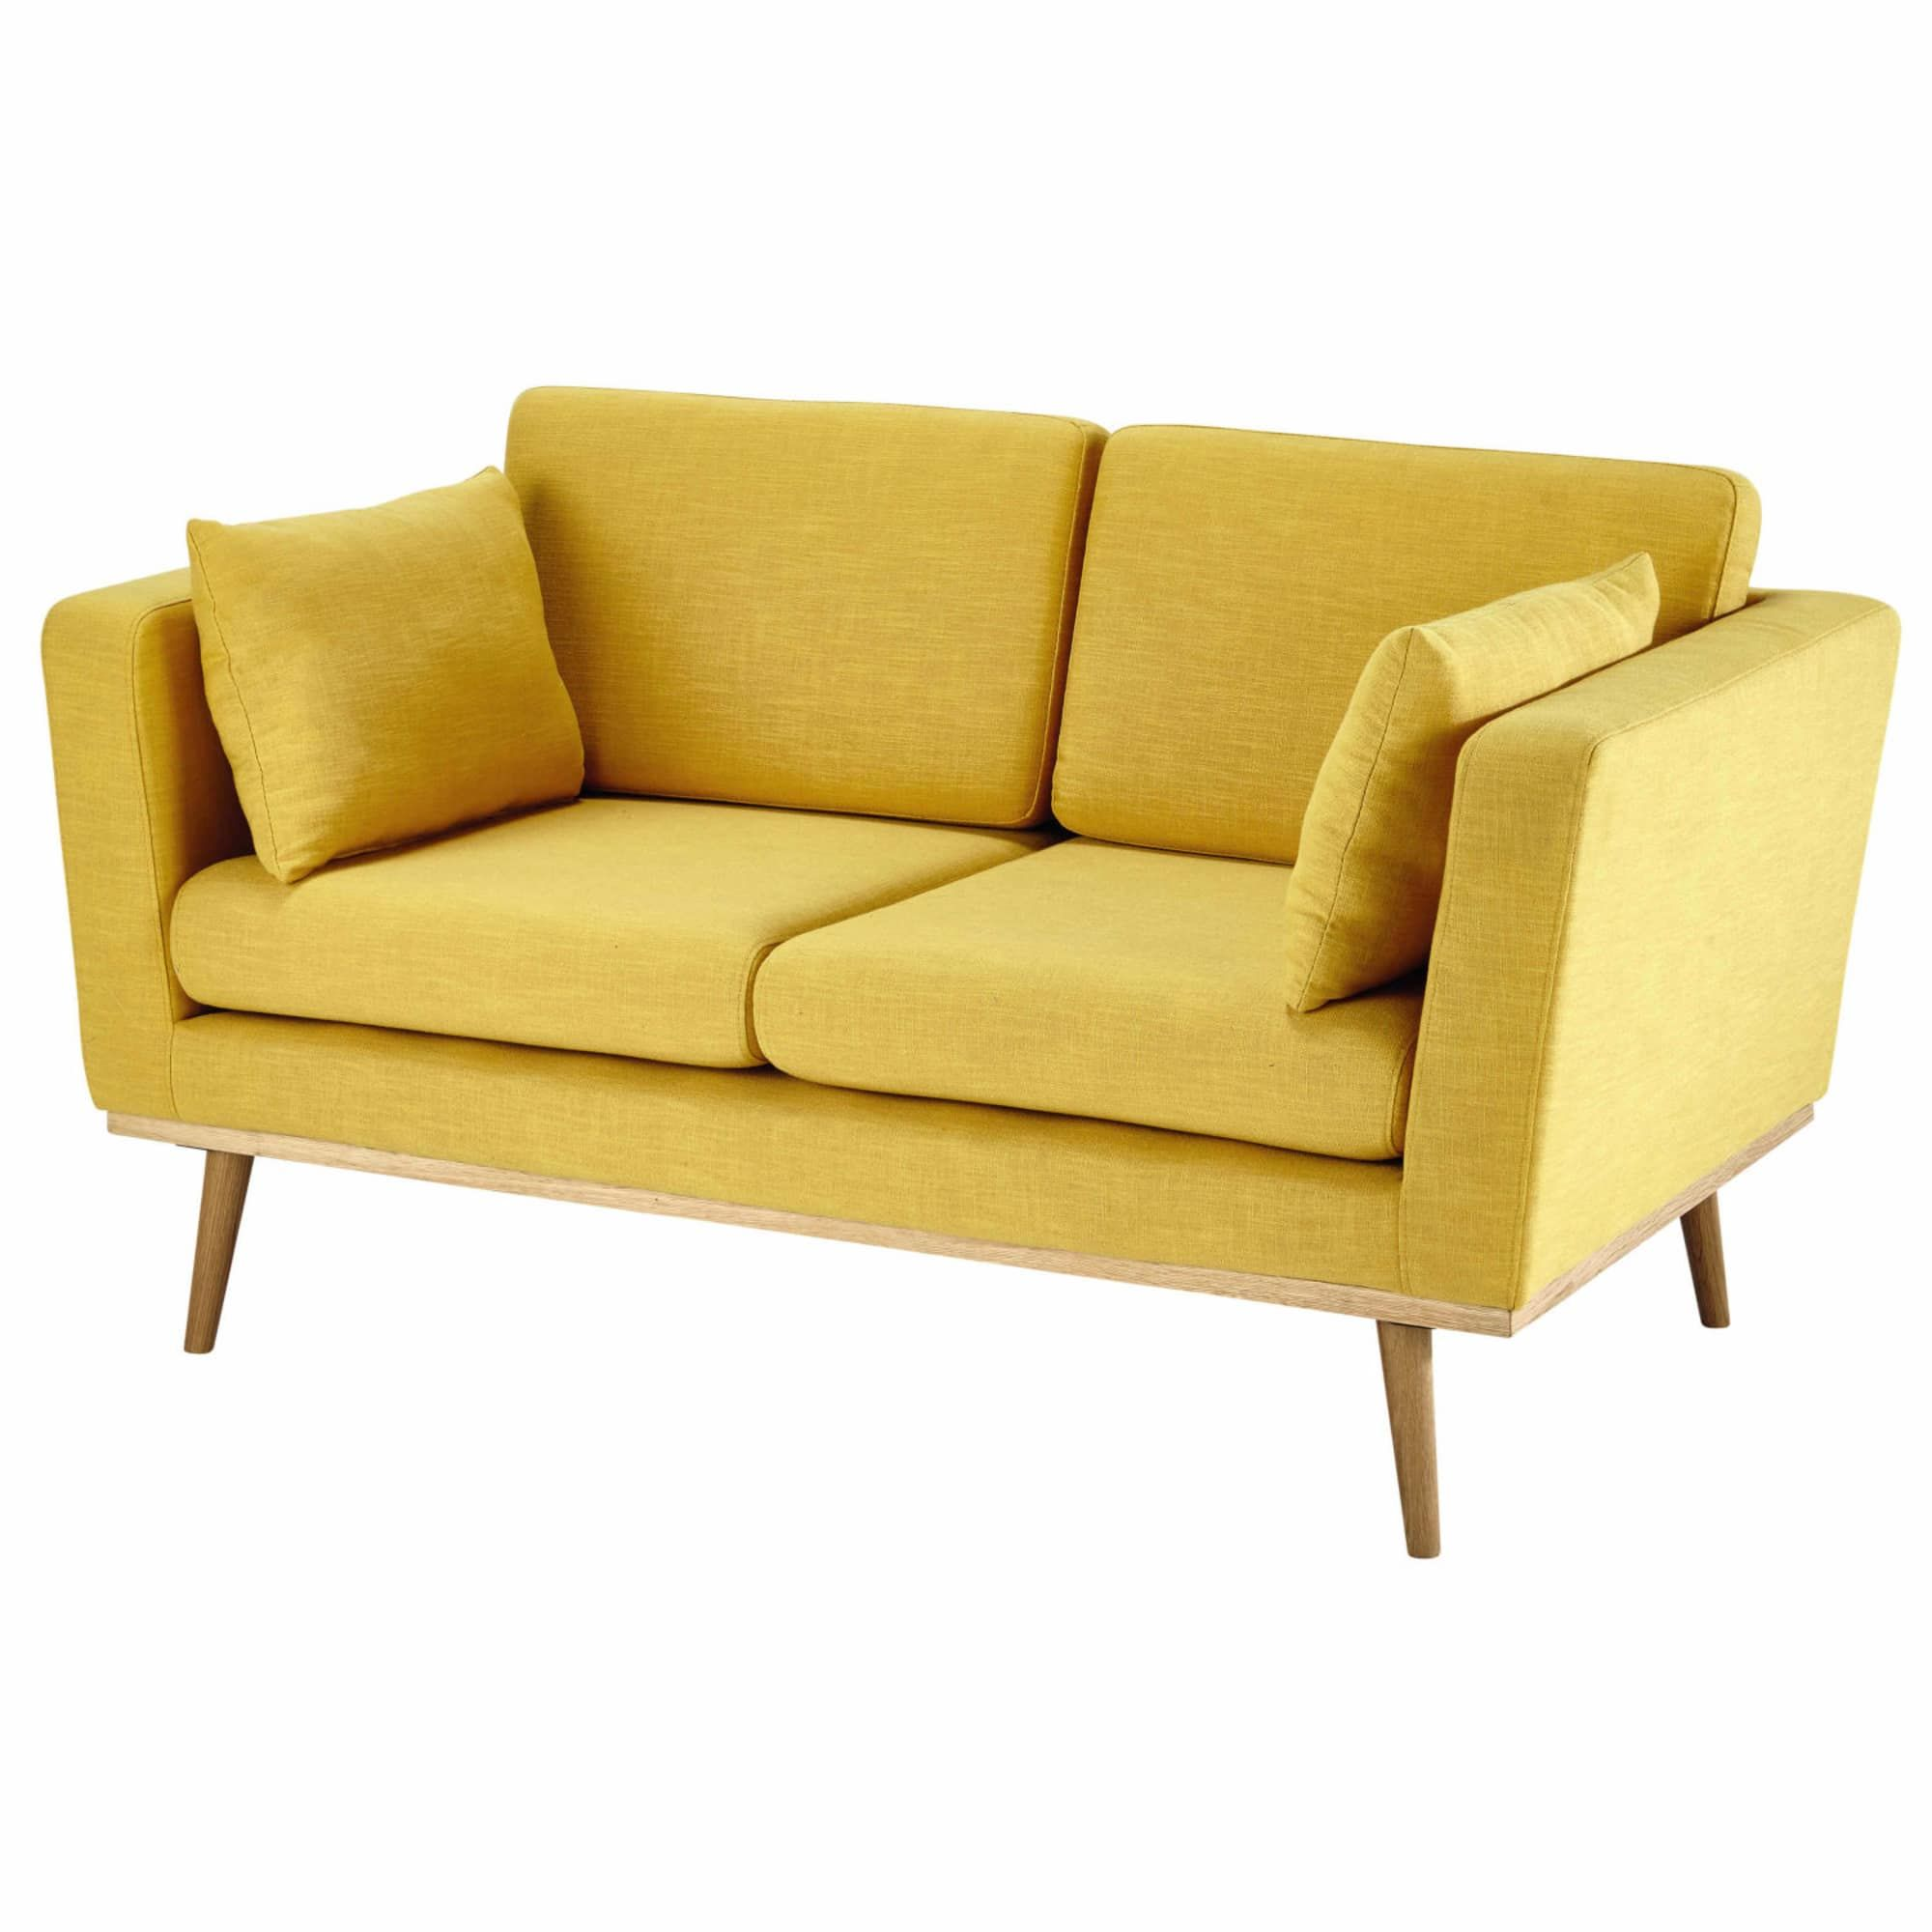 Canape 2 Places Jaune Canape 2 Places Canape Jaune Et Mobilier